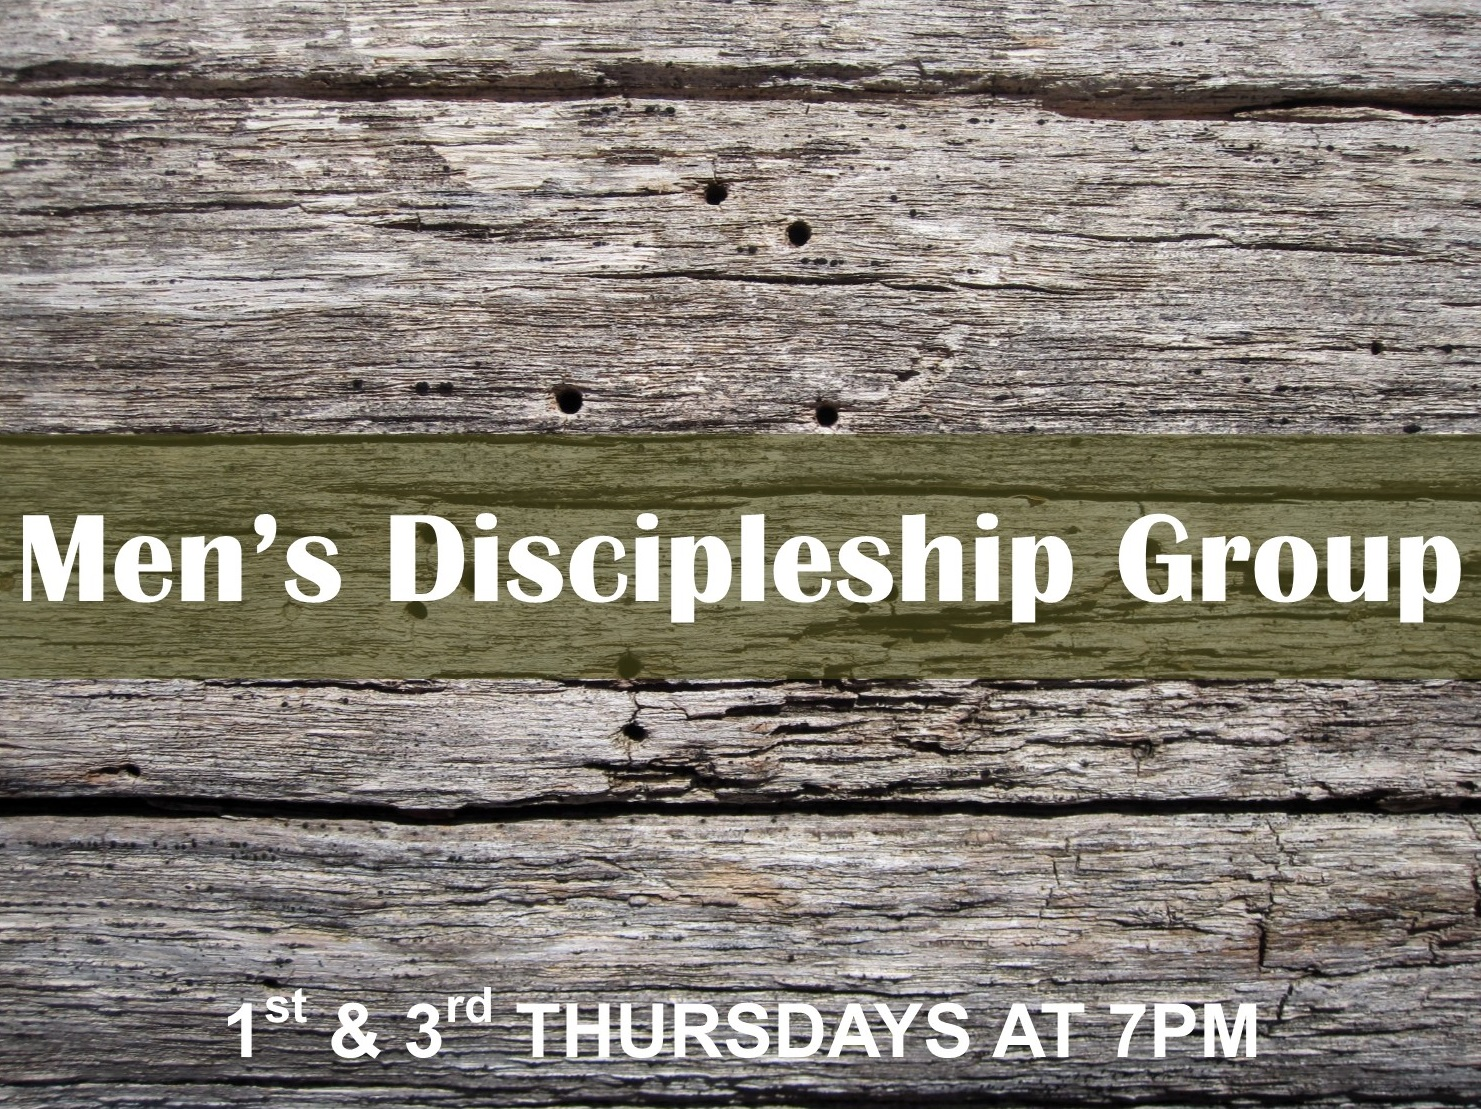 Men's Discipleship Group (1st & 3rd) image